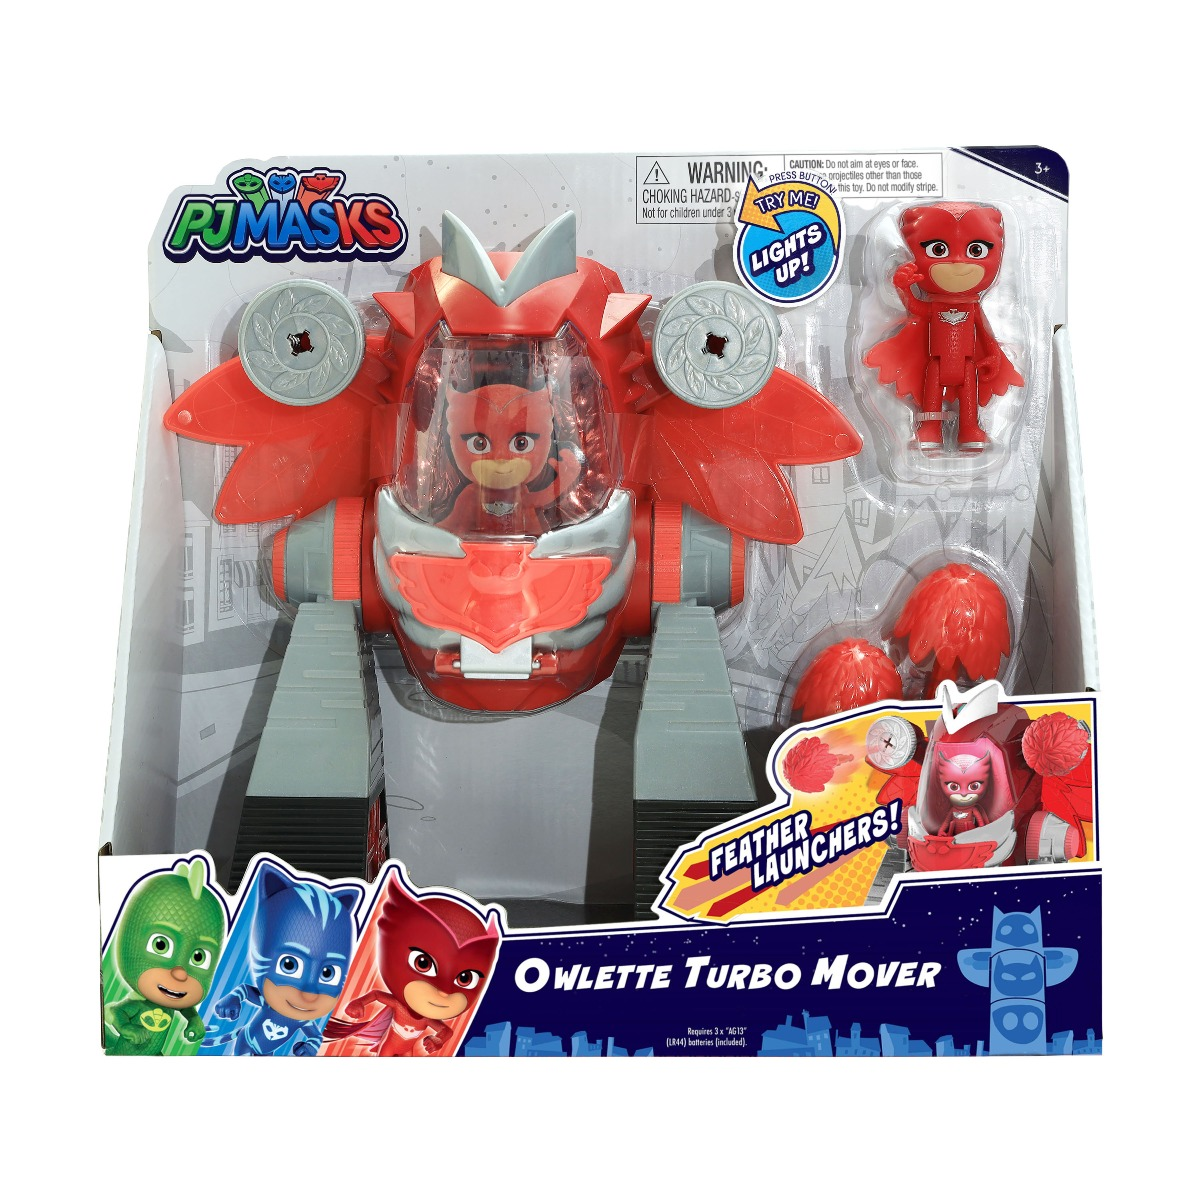 Figurina Pj Masks Turbo Mover, Owlette 95507